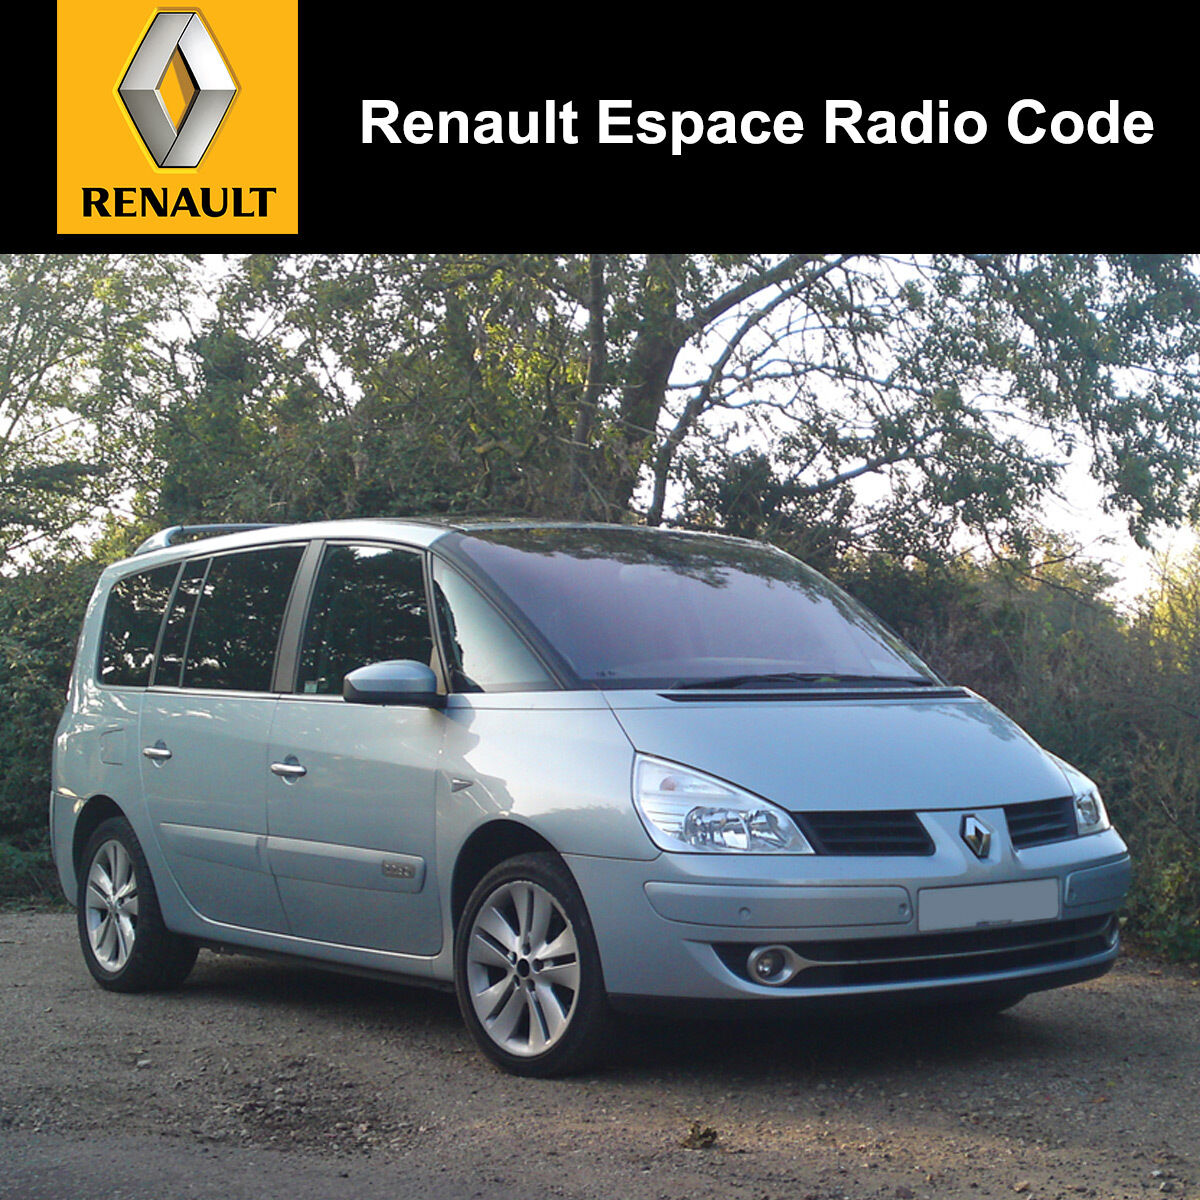 Details about Renault Espace Radio Code Stereo Decode Car Unlock Fast  Service UK All Vehicles